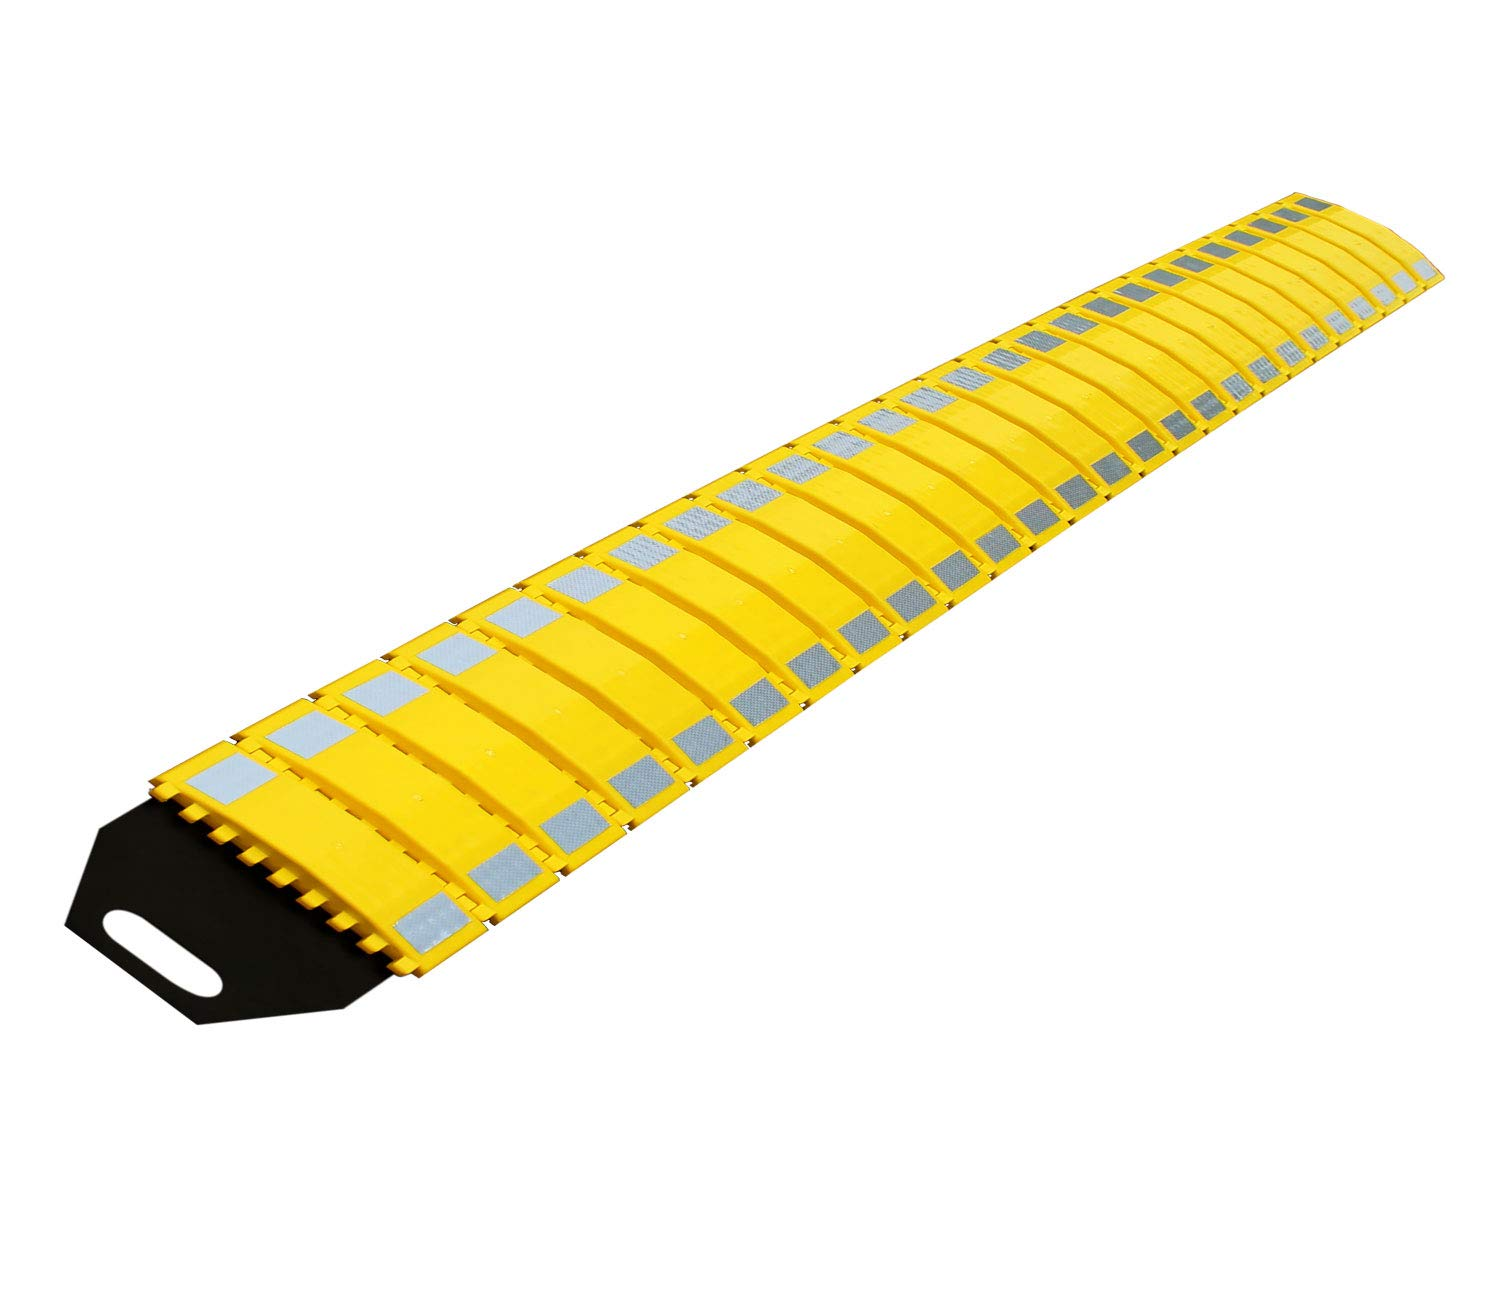 RK Safety RK-PSH10 PU Portable Folding Traffic Control Calming Speed Bump, 10' Long x 9-3/4 Wide